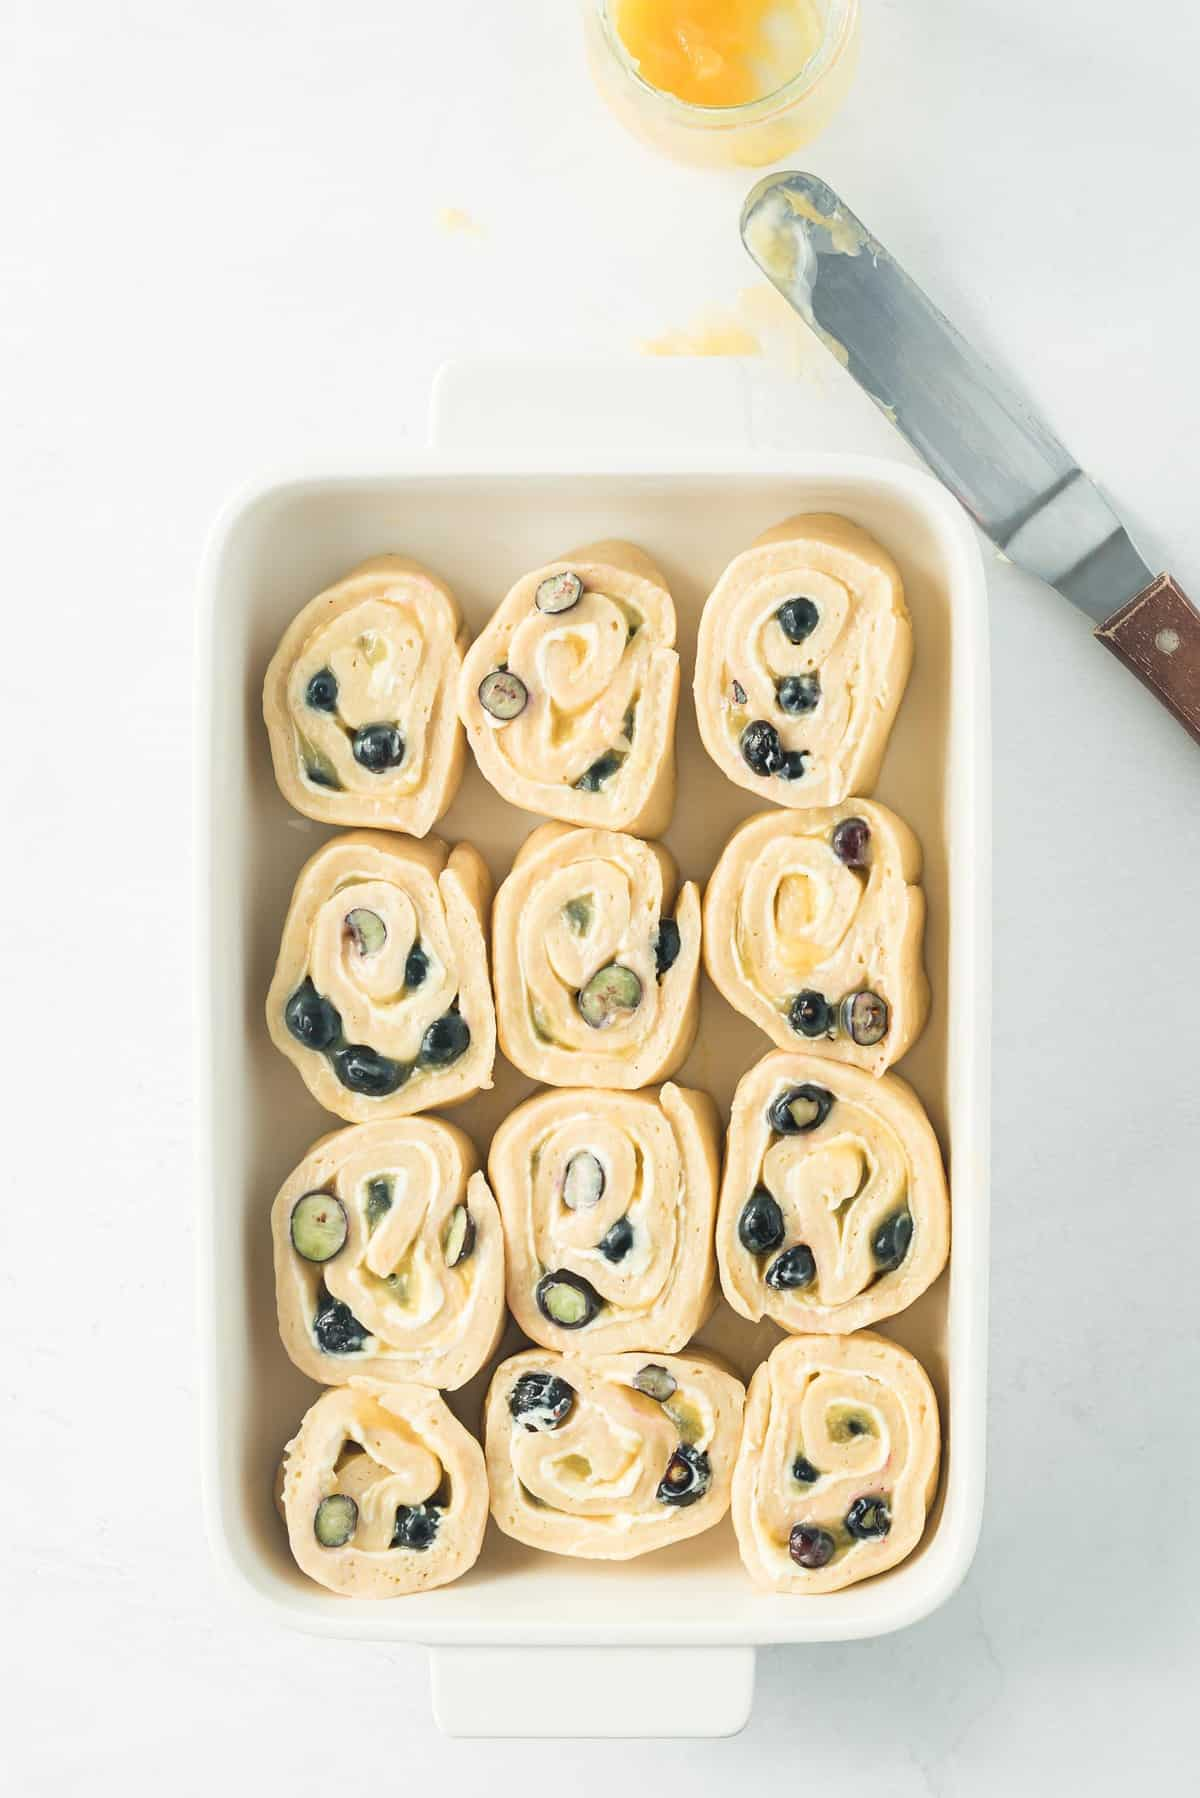 Unbaked blueberry rolls in a white baking dish.